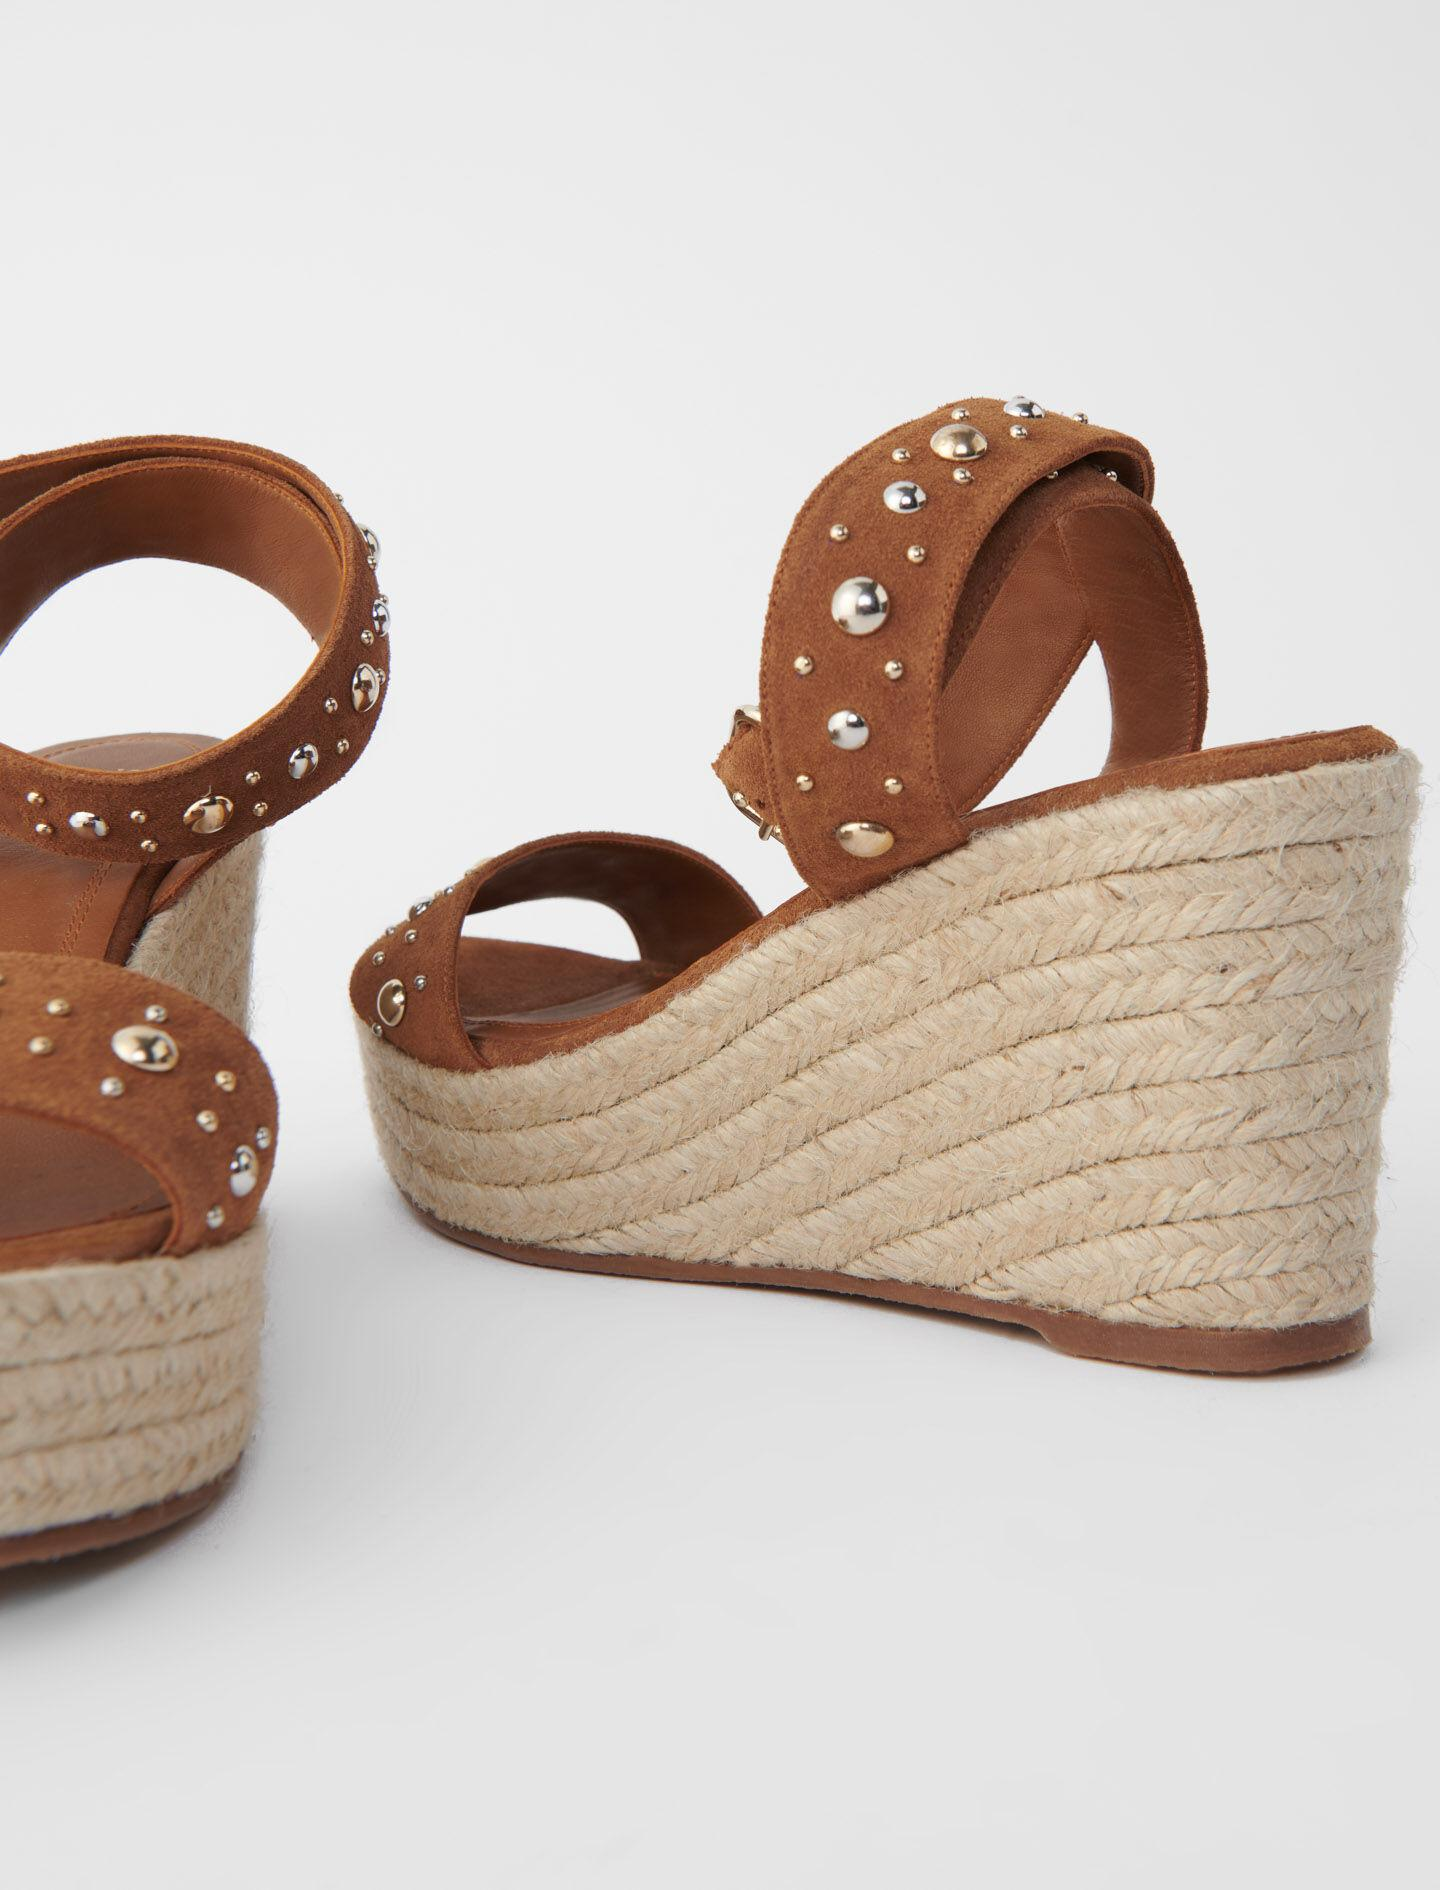 WEDGE SANDALS WITH SUEDE STRAPS 5